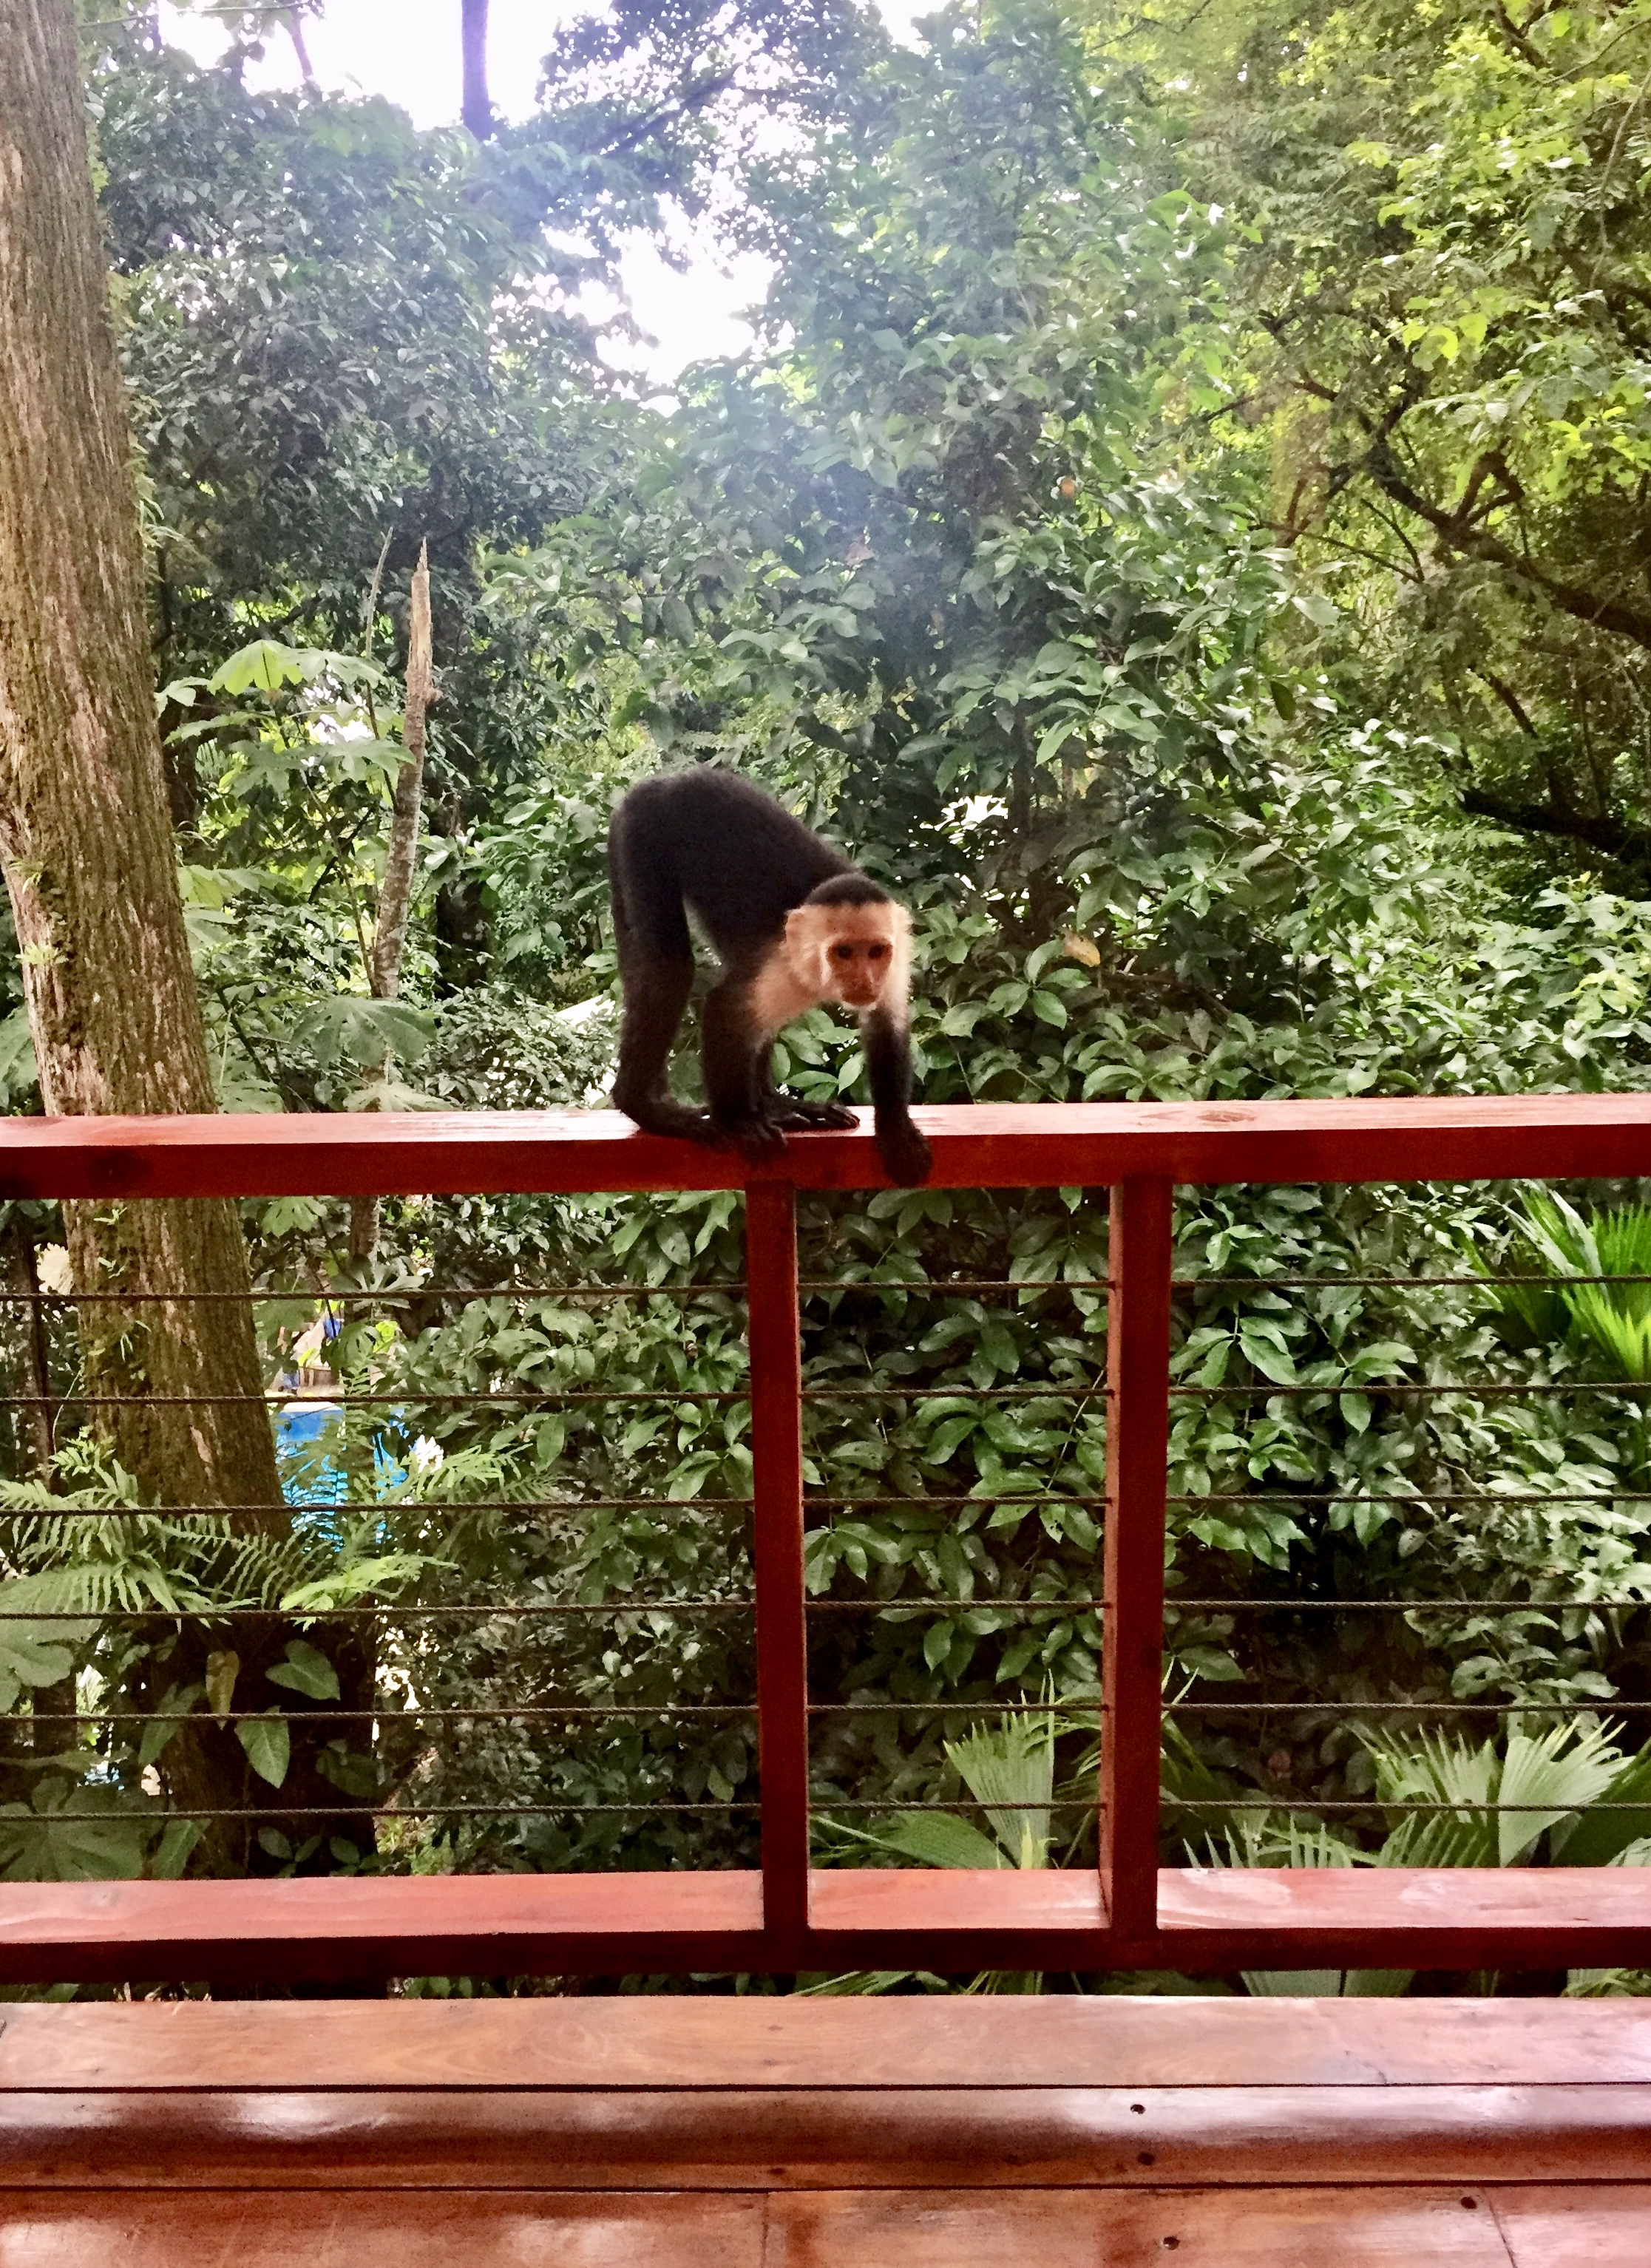 White-faced monkey on our deck when we arrived